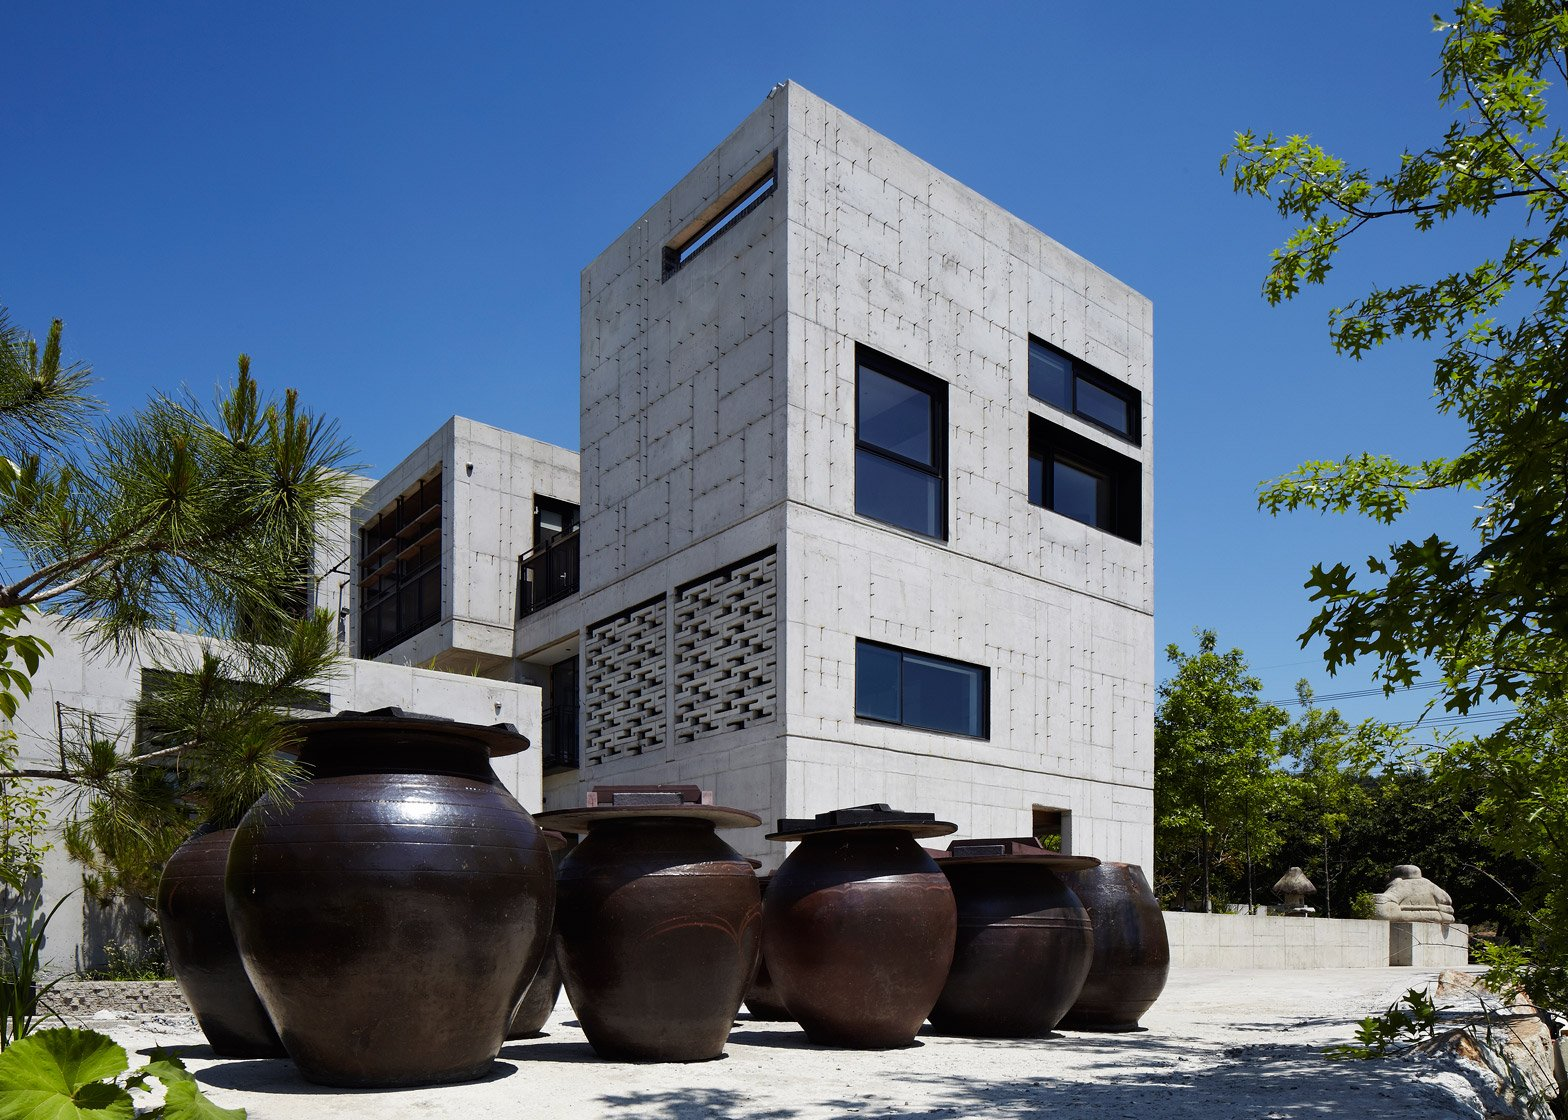 The Ground Wall in Gimhae, South Korea by FHHH Friends Architects